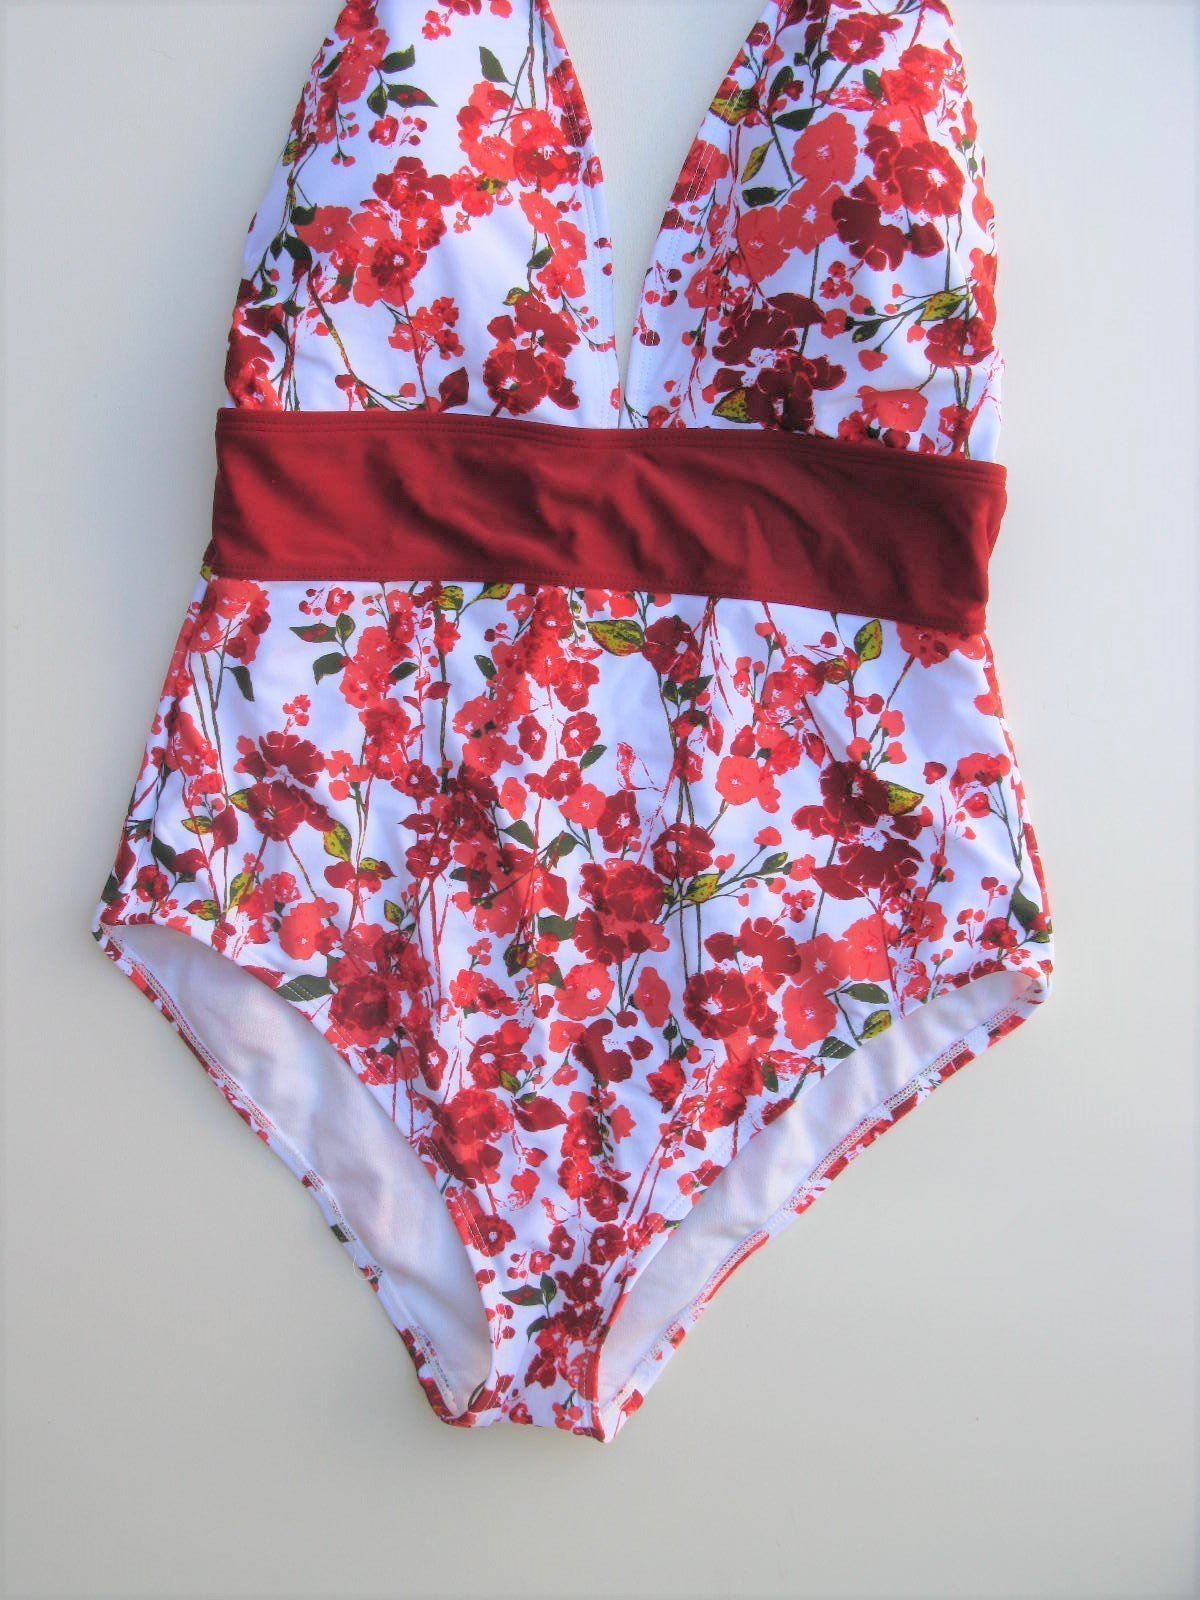 One Piece Bathing Suit Adore Me Heidie Floral Print One Piece Swimsuit M NWT $50